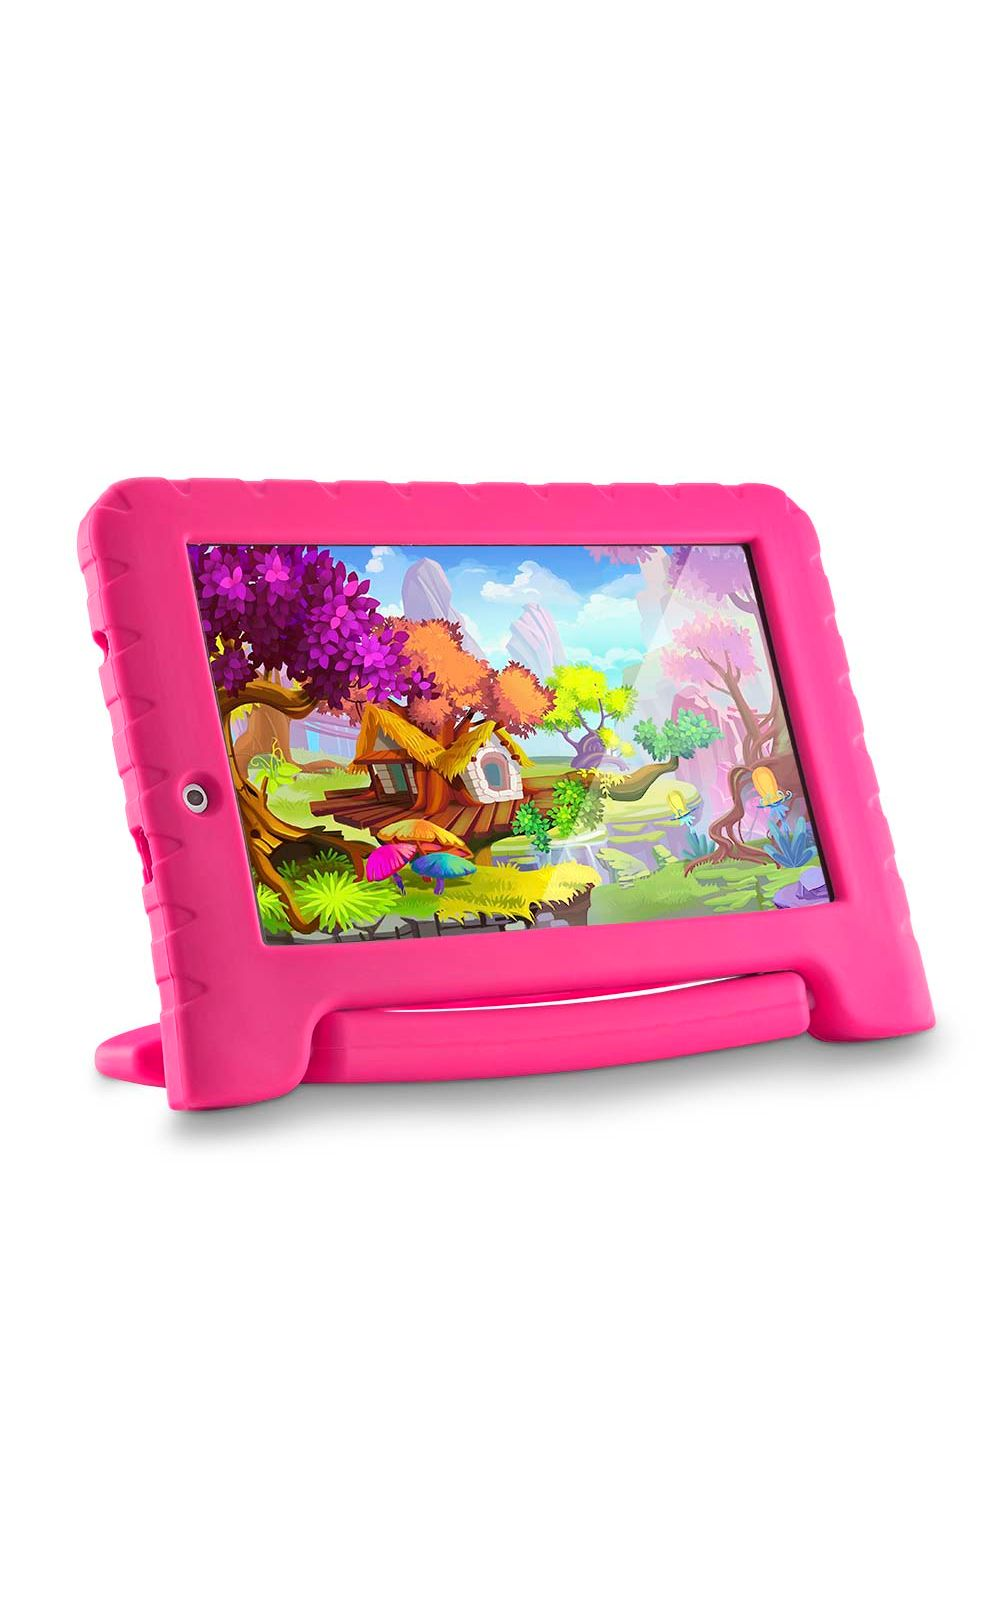 Foto 4 - Tablet Multilaser Kid Pad Plus Rosa 1Gb Android 7 Wifi Memória 8Gb Quad Core Multilaser - NB279